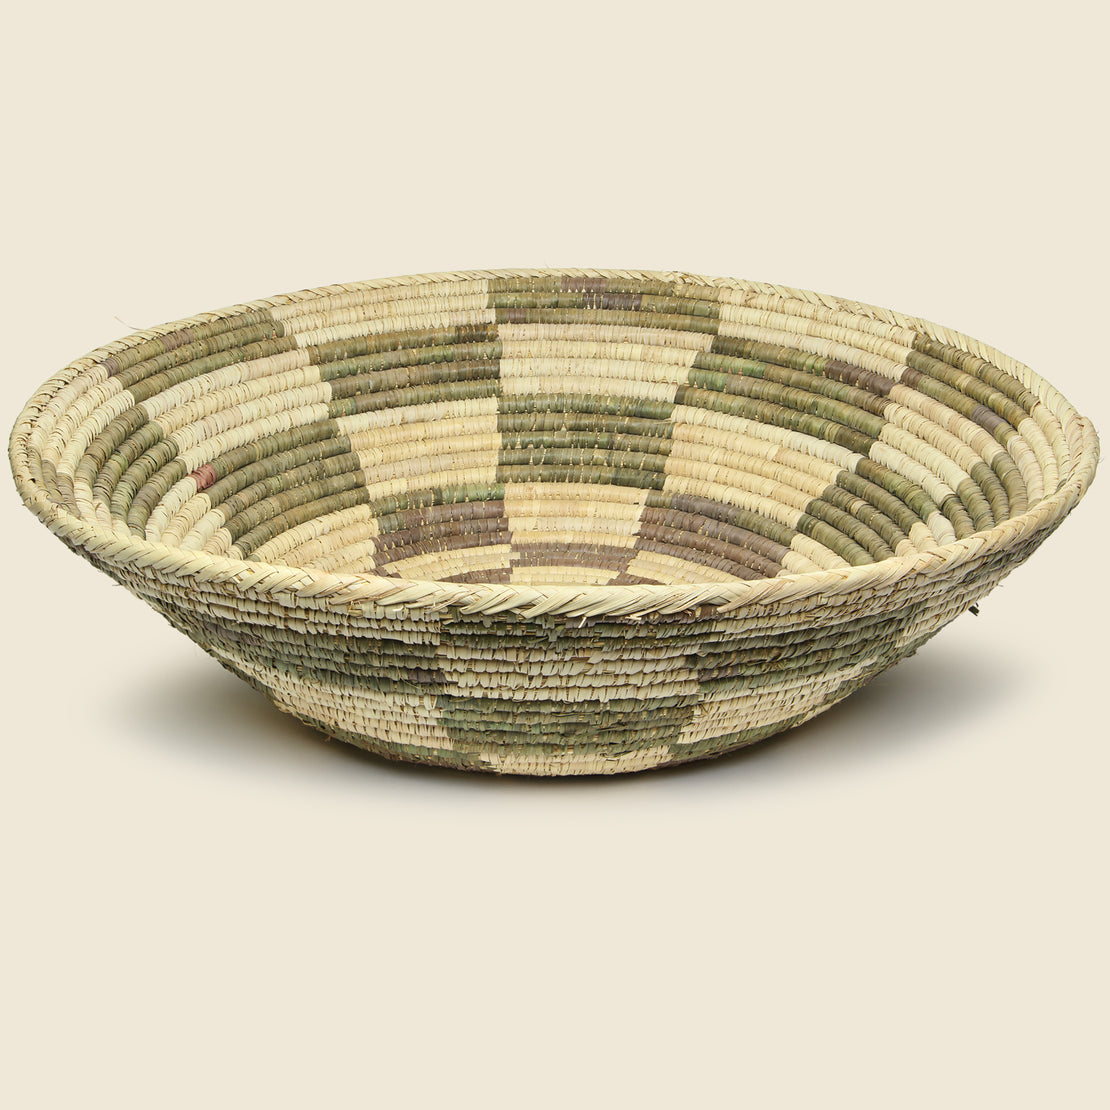 Vintage Large Handwoven Basket